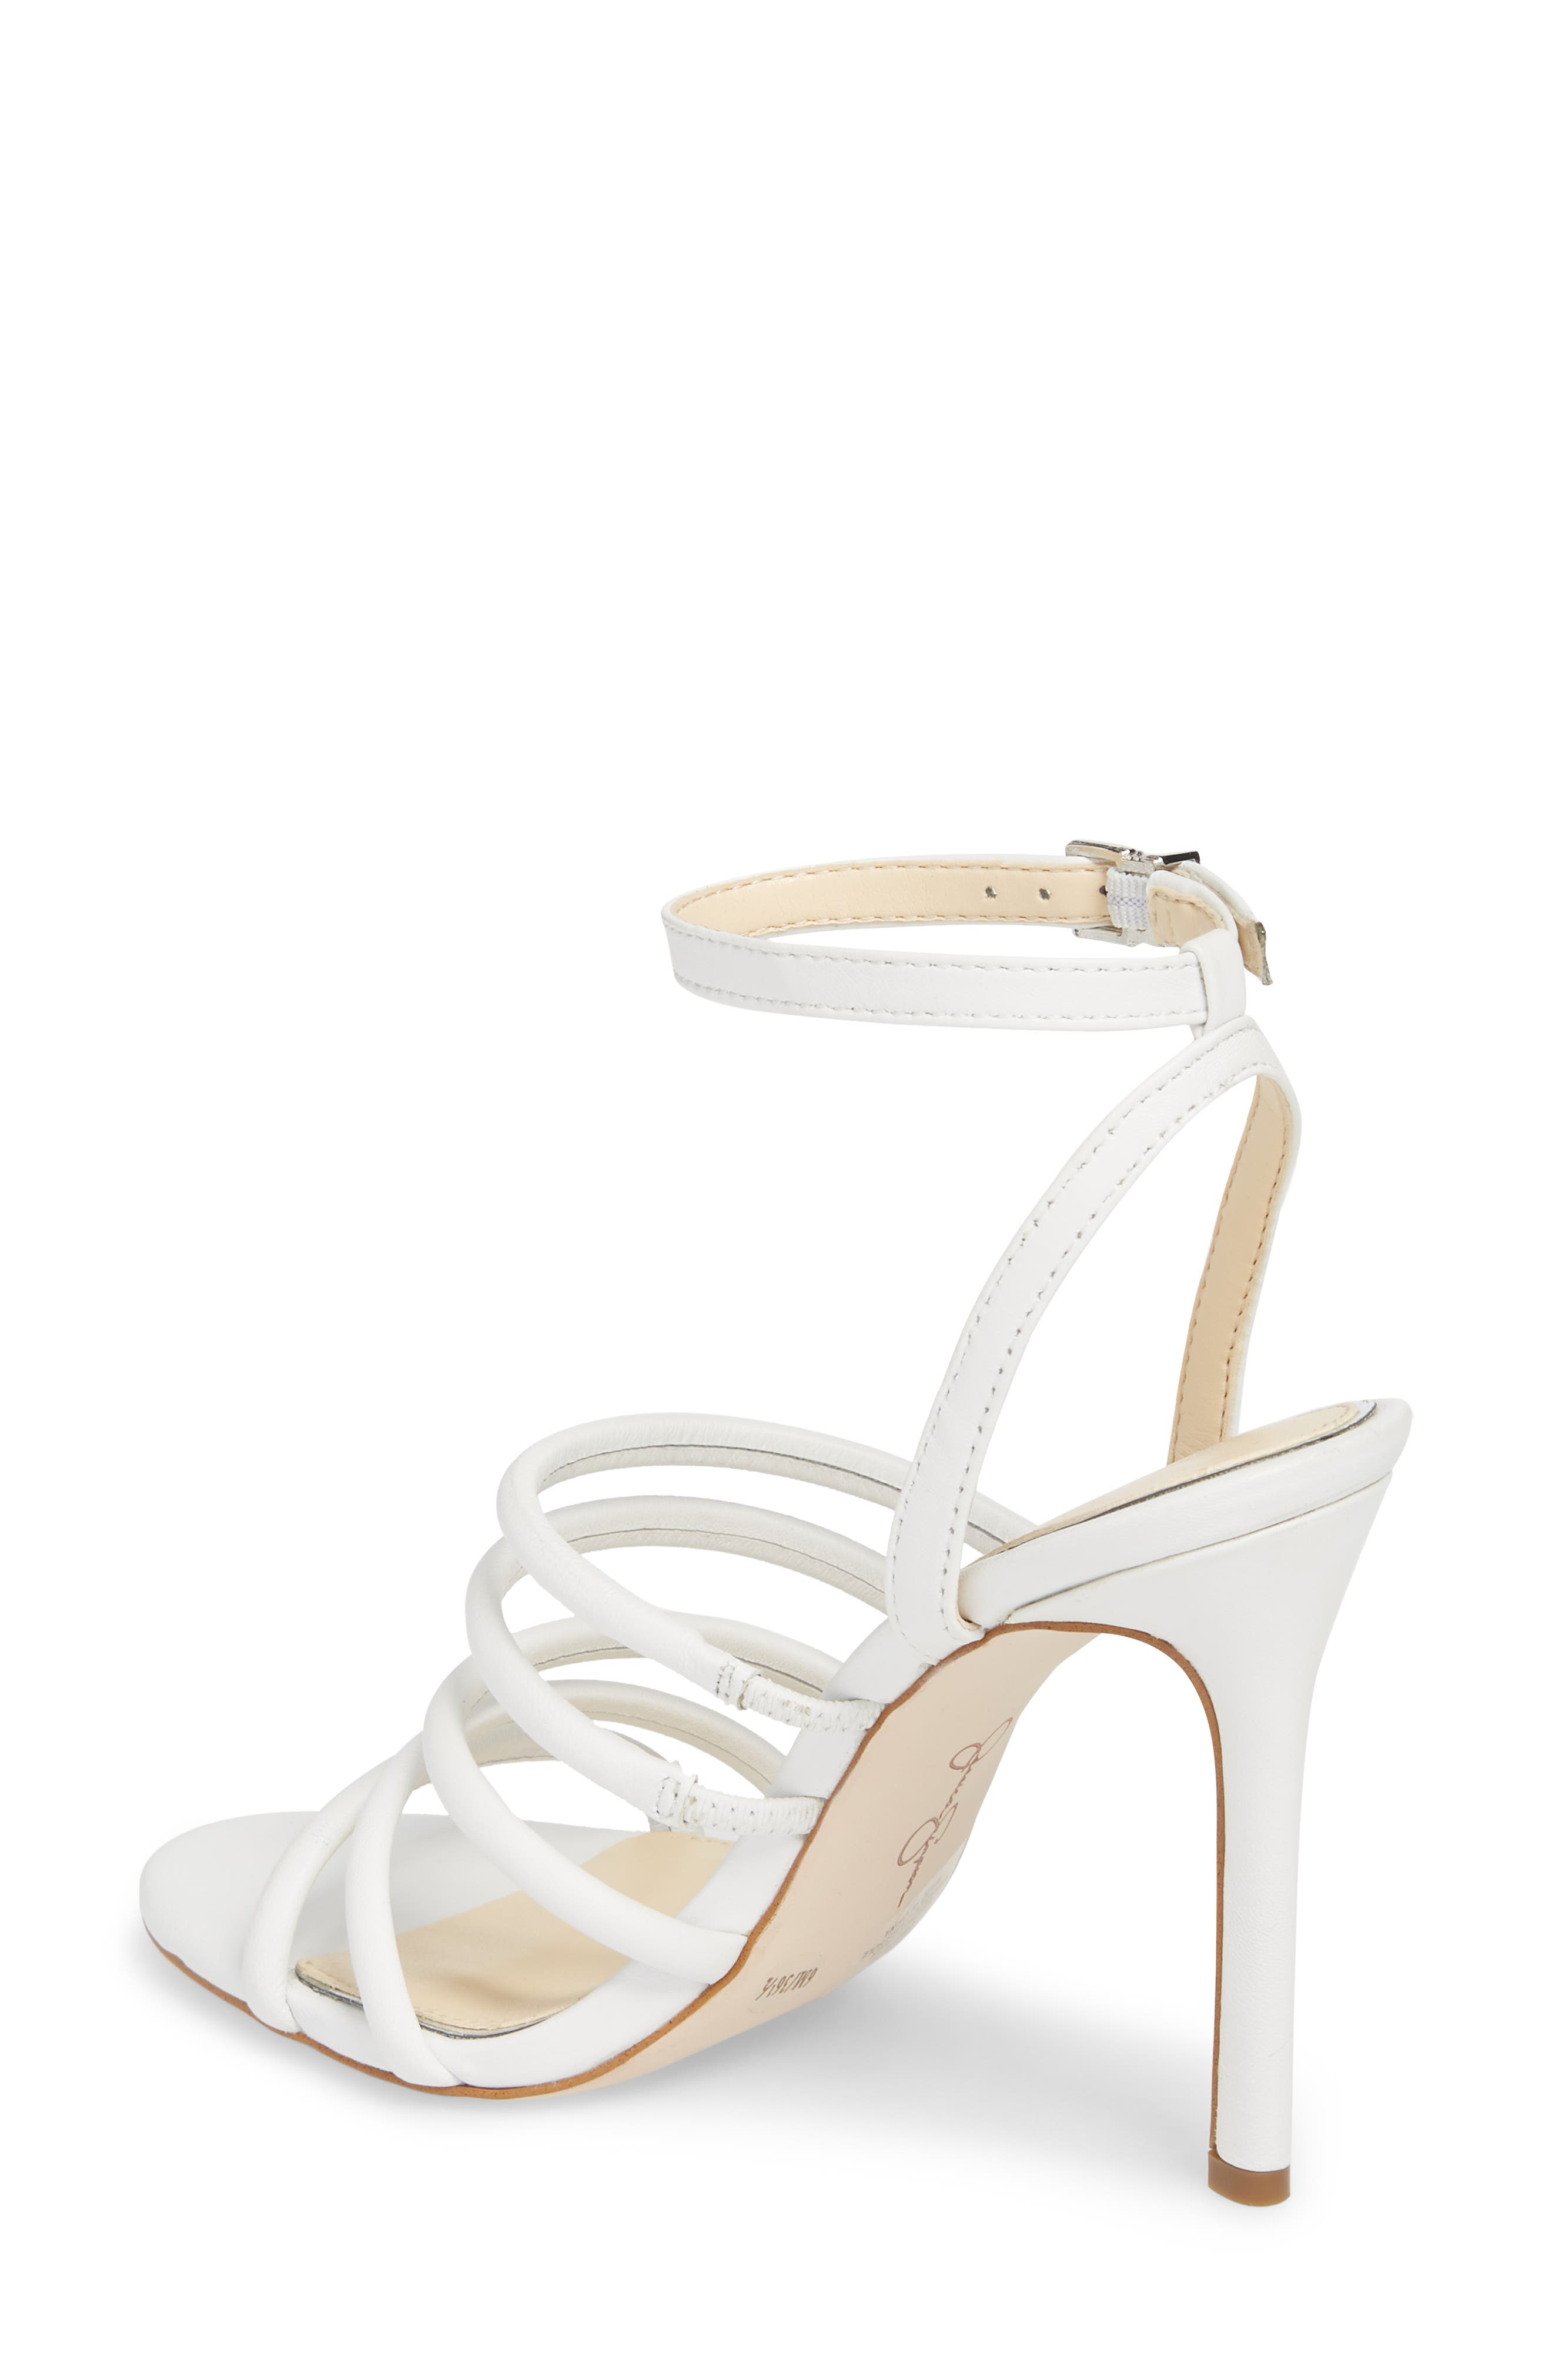 Joselle Strappy Sandal,                             Alternate thumbnail 5, color,